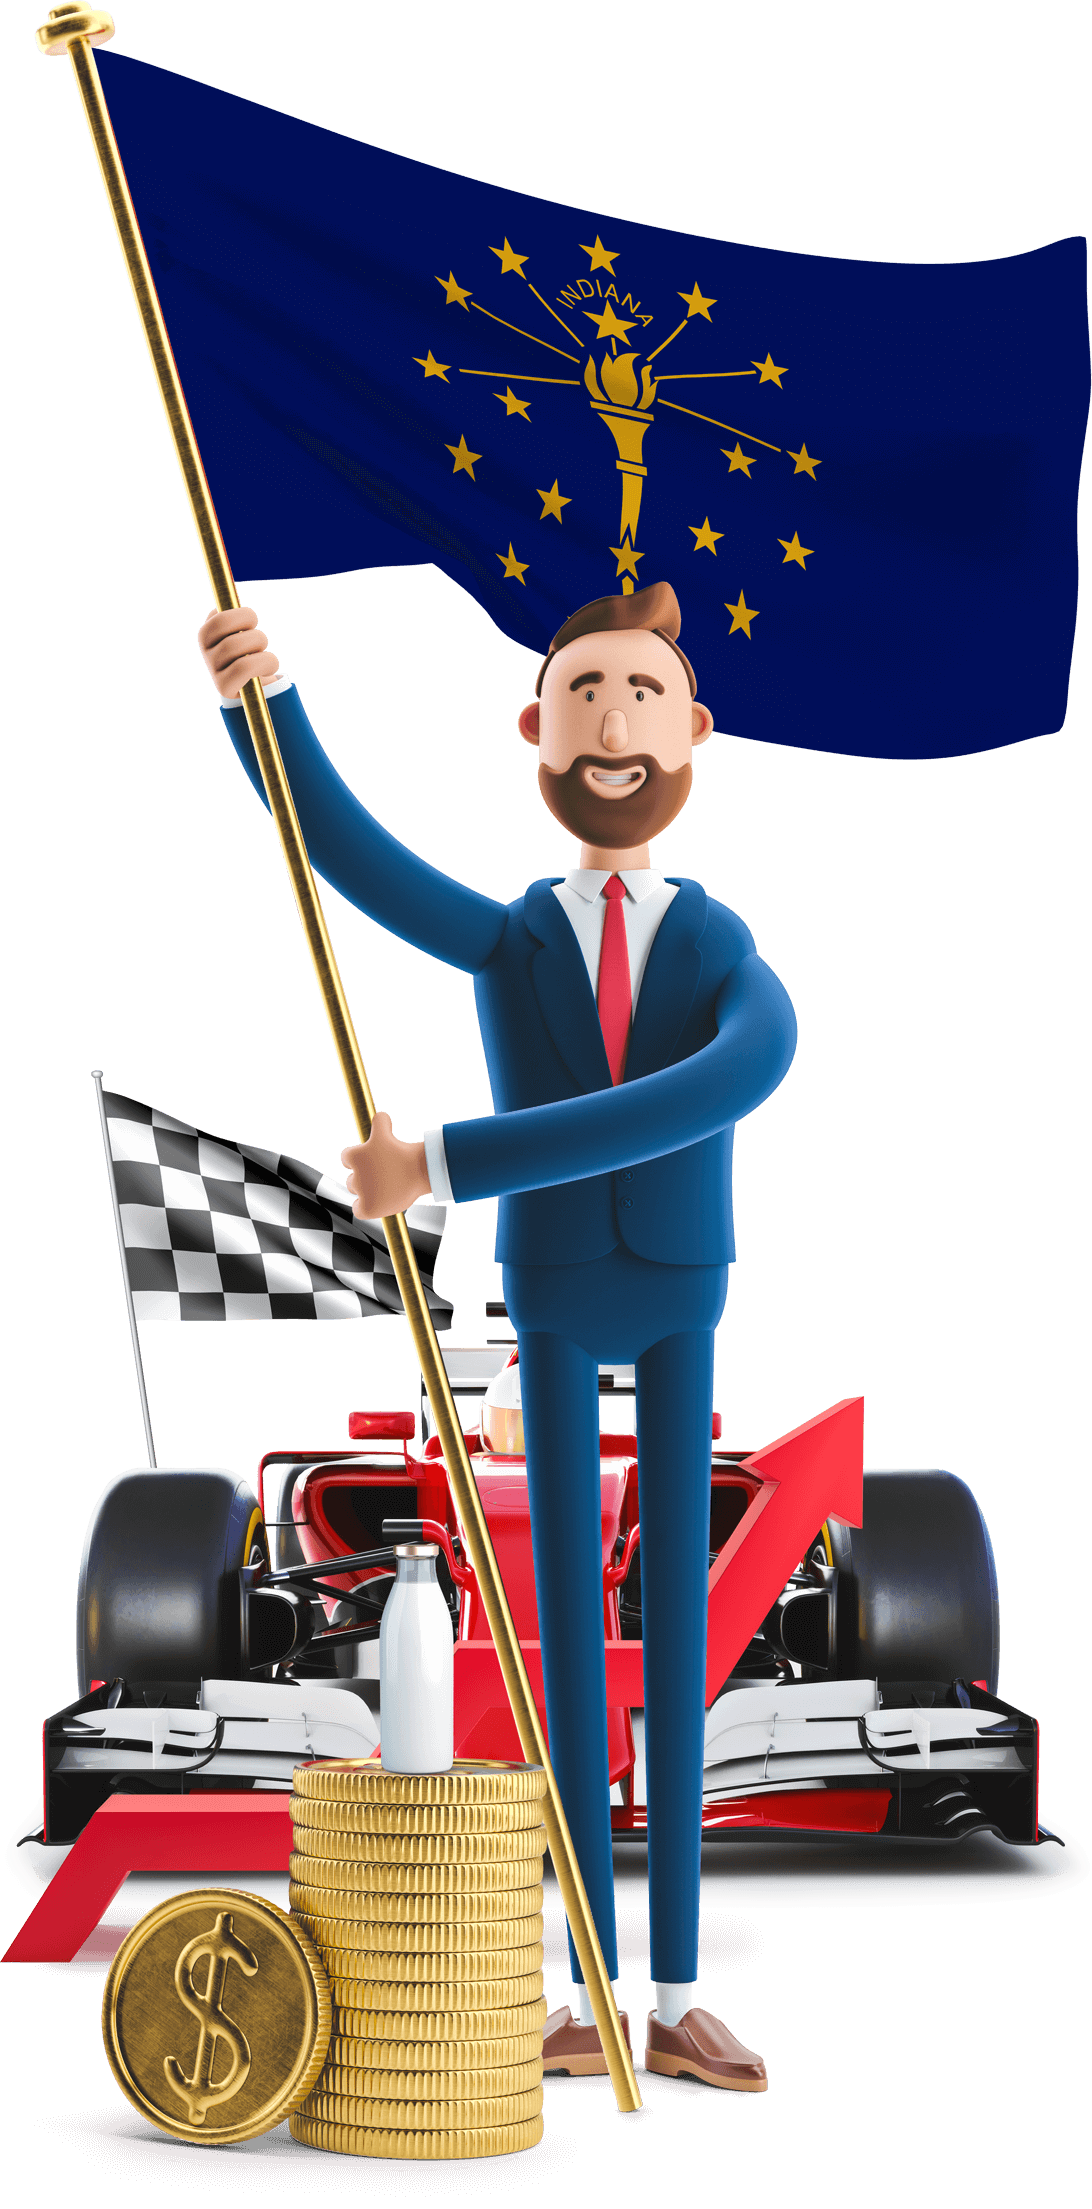 Indiana flag held by MetCredit USA businessman who's standing in front of a race car